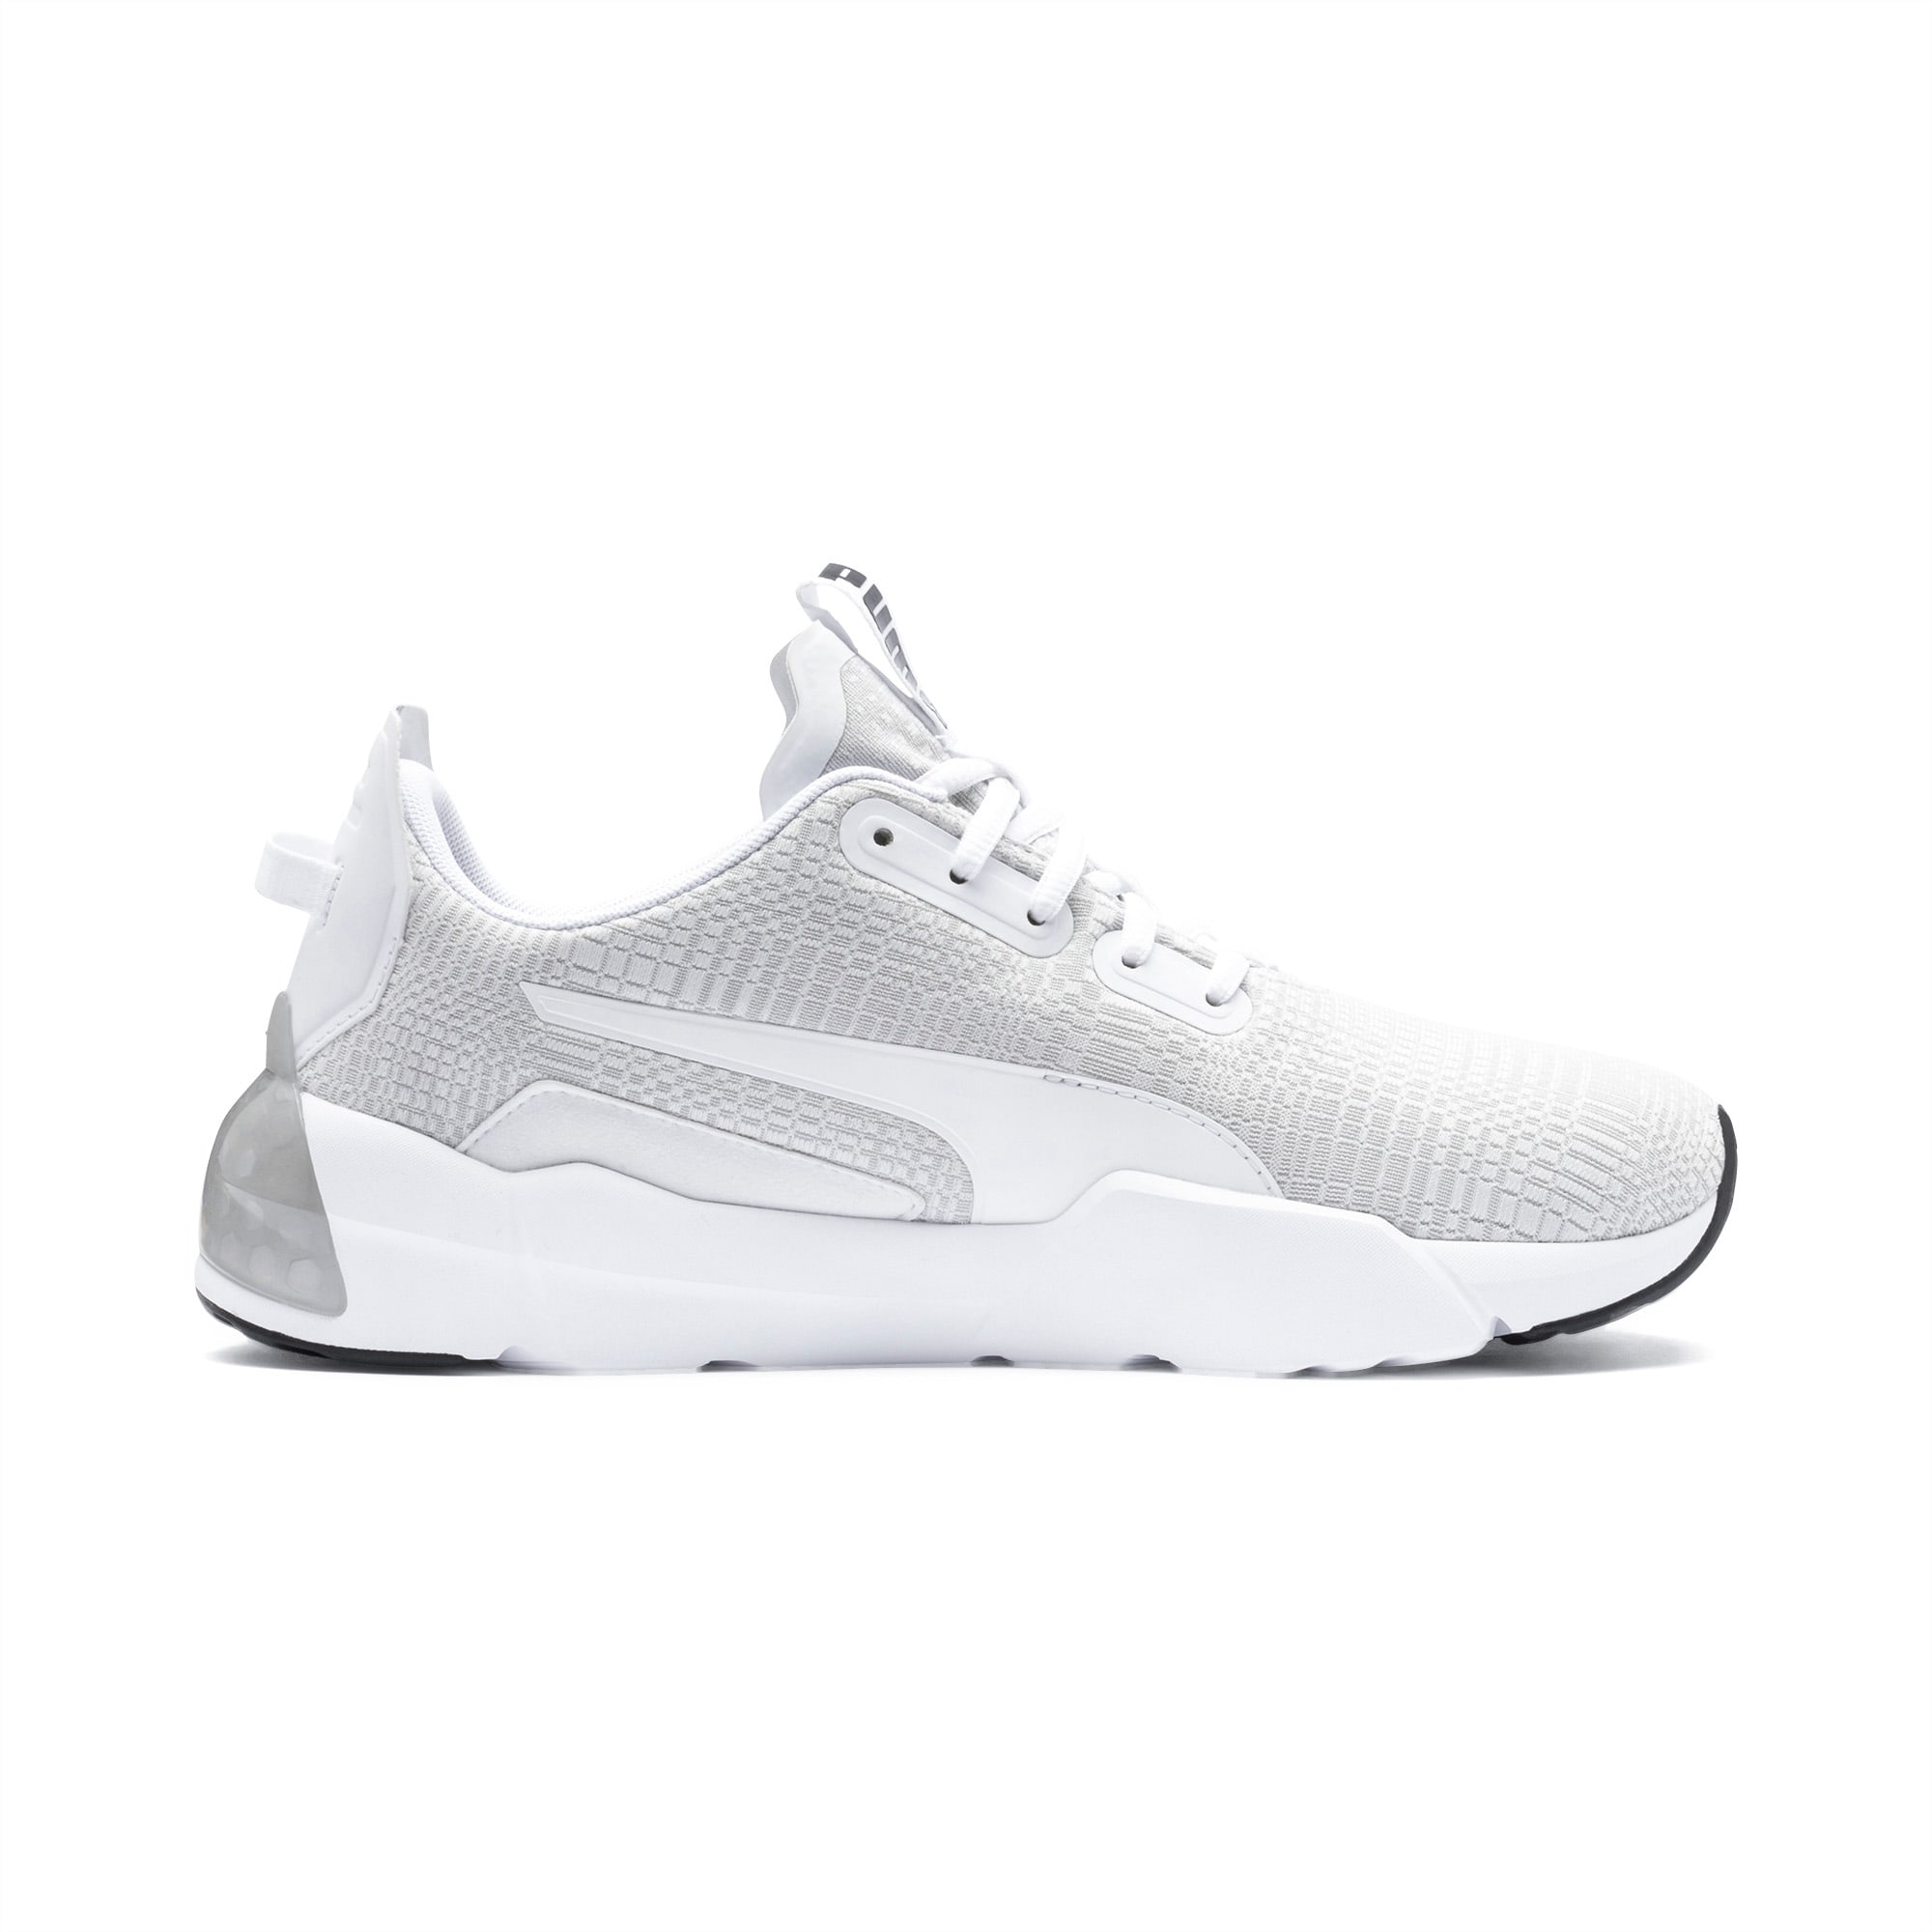 Running Puma Uomo | CELL Phase Lights Running Shoes Puma WhiteGray Violet